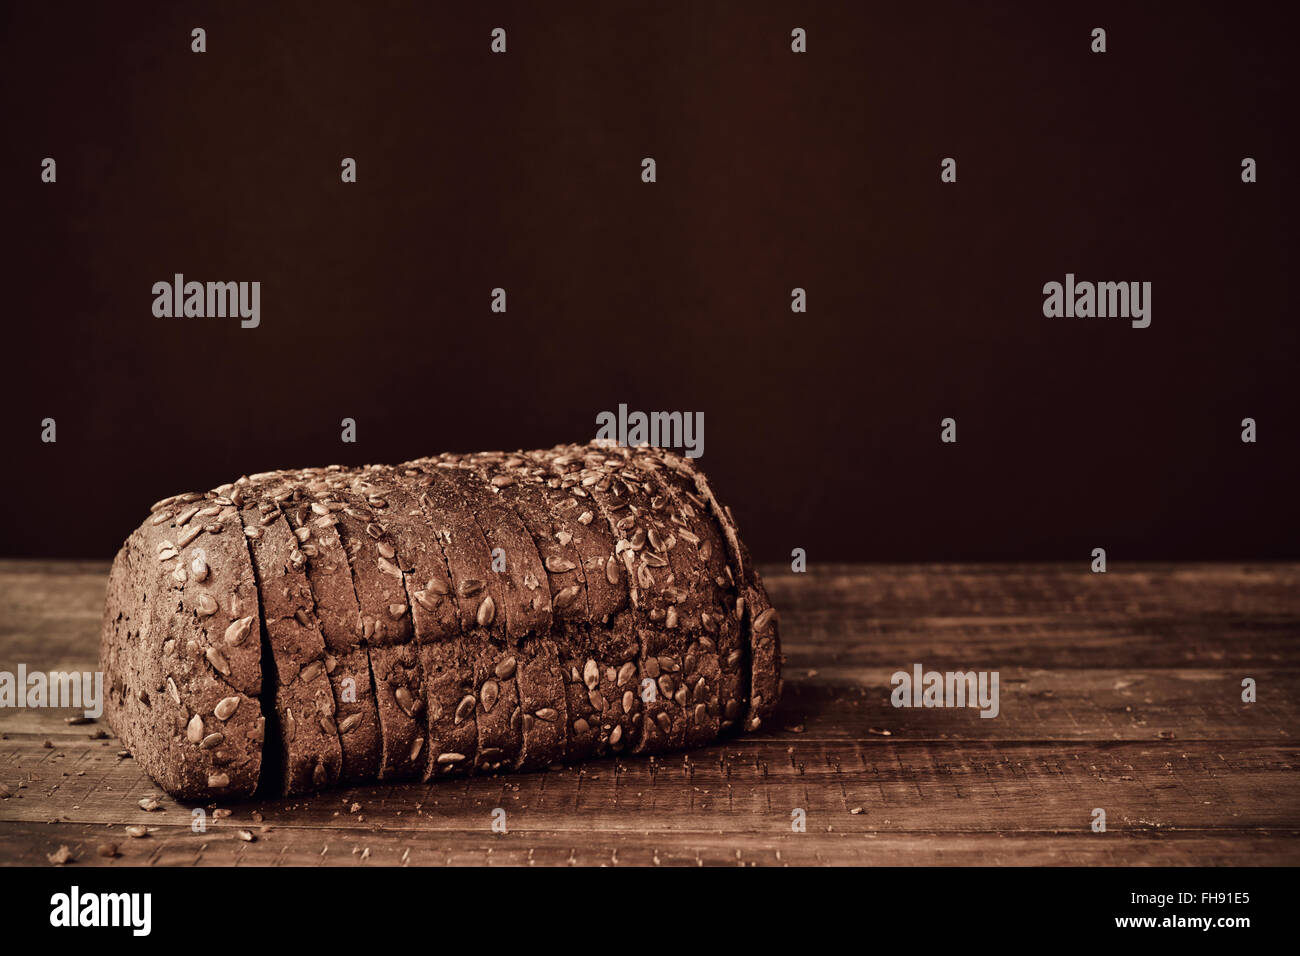 a sliced loaf of rye bread topped with sunflower seeds on a rustic wooden surface, in sepia toning - Stock Image